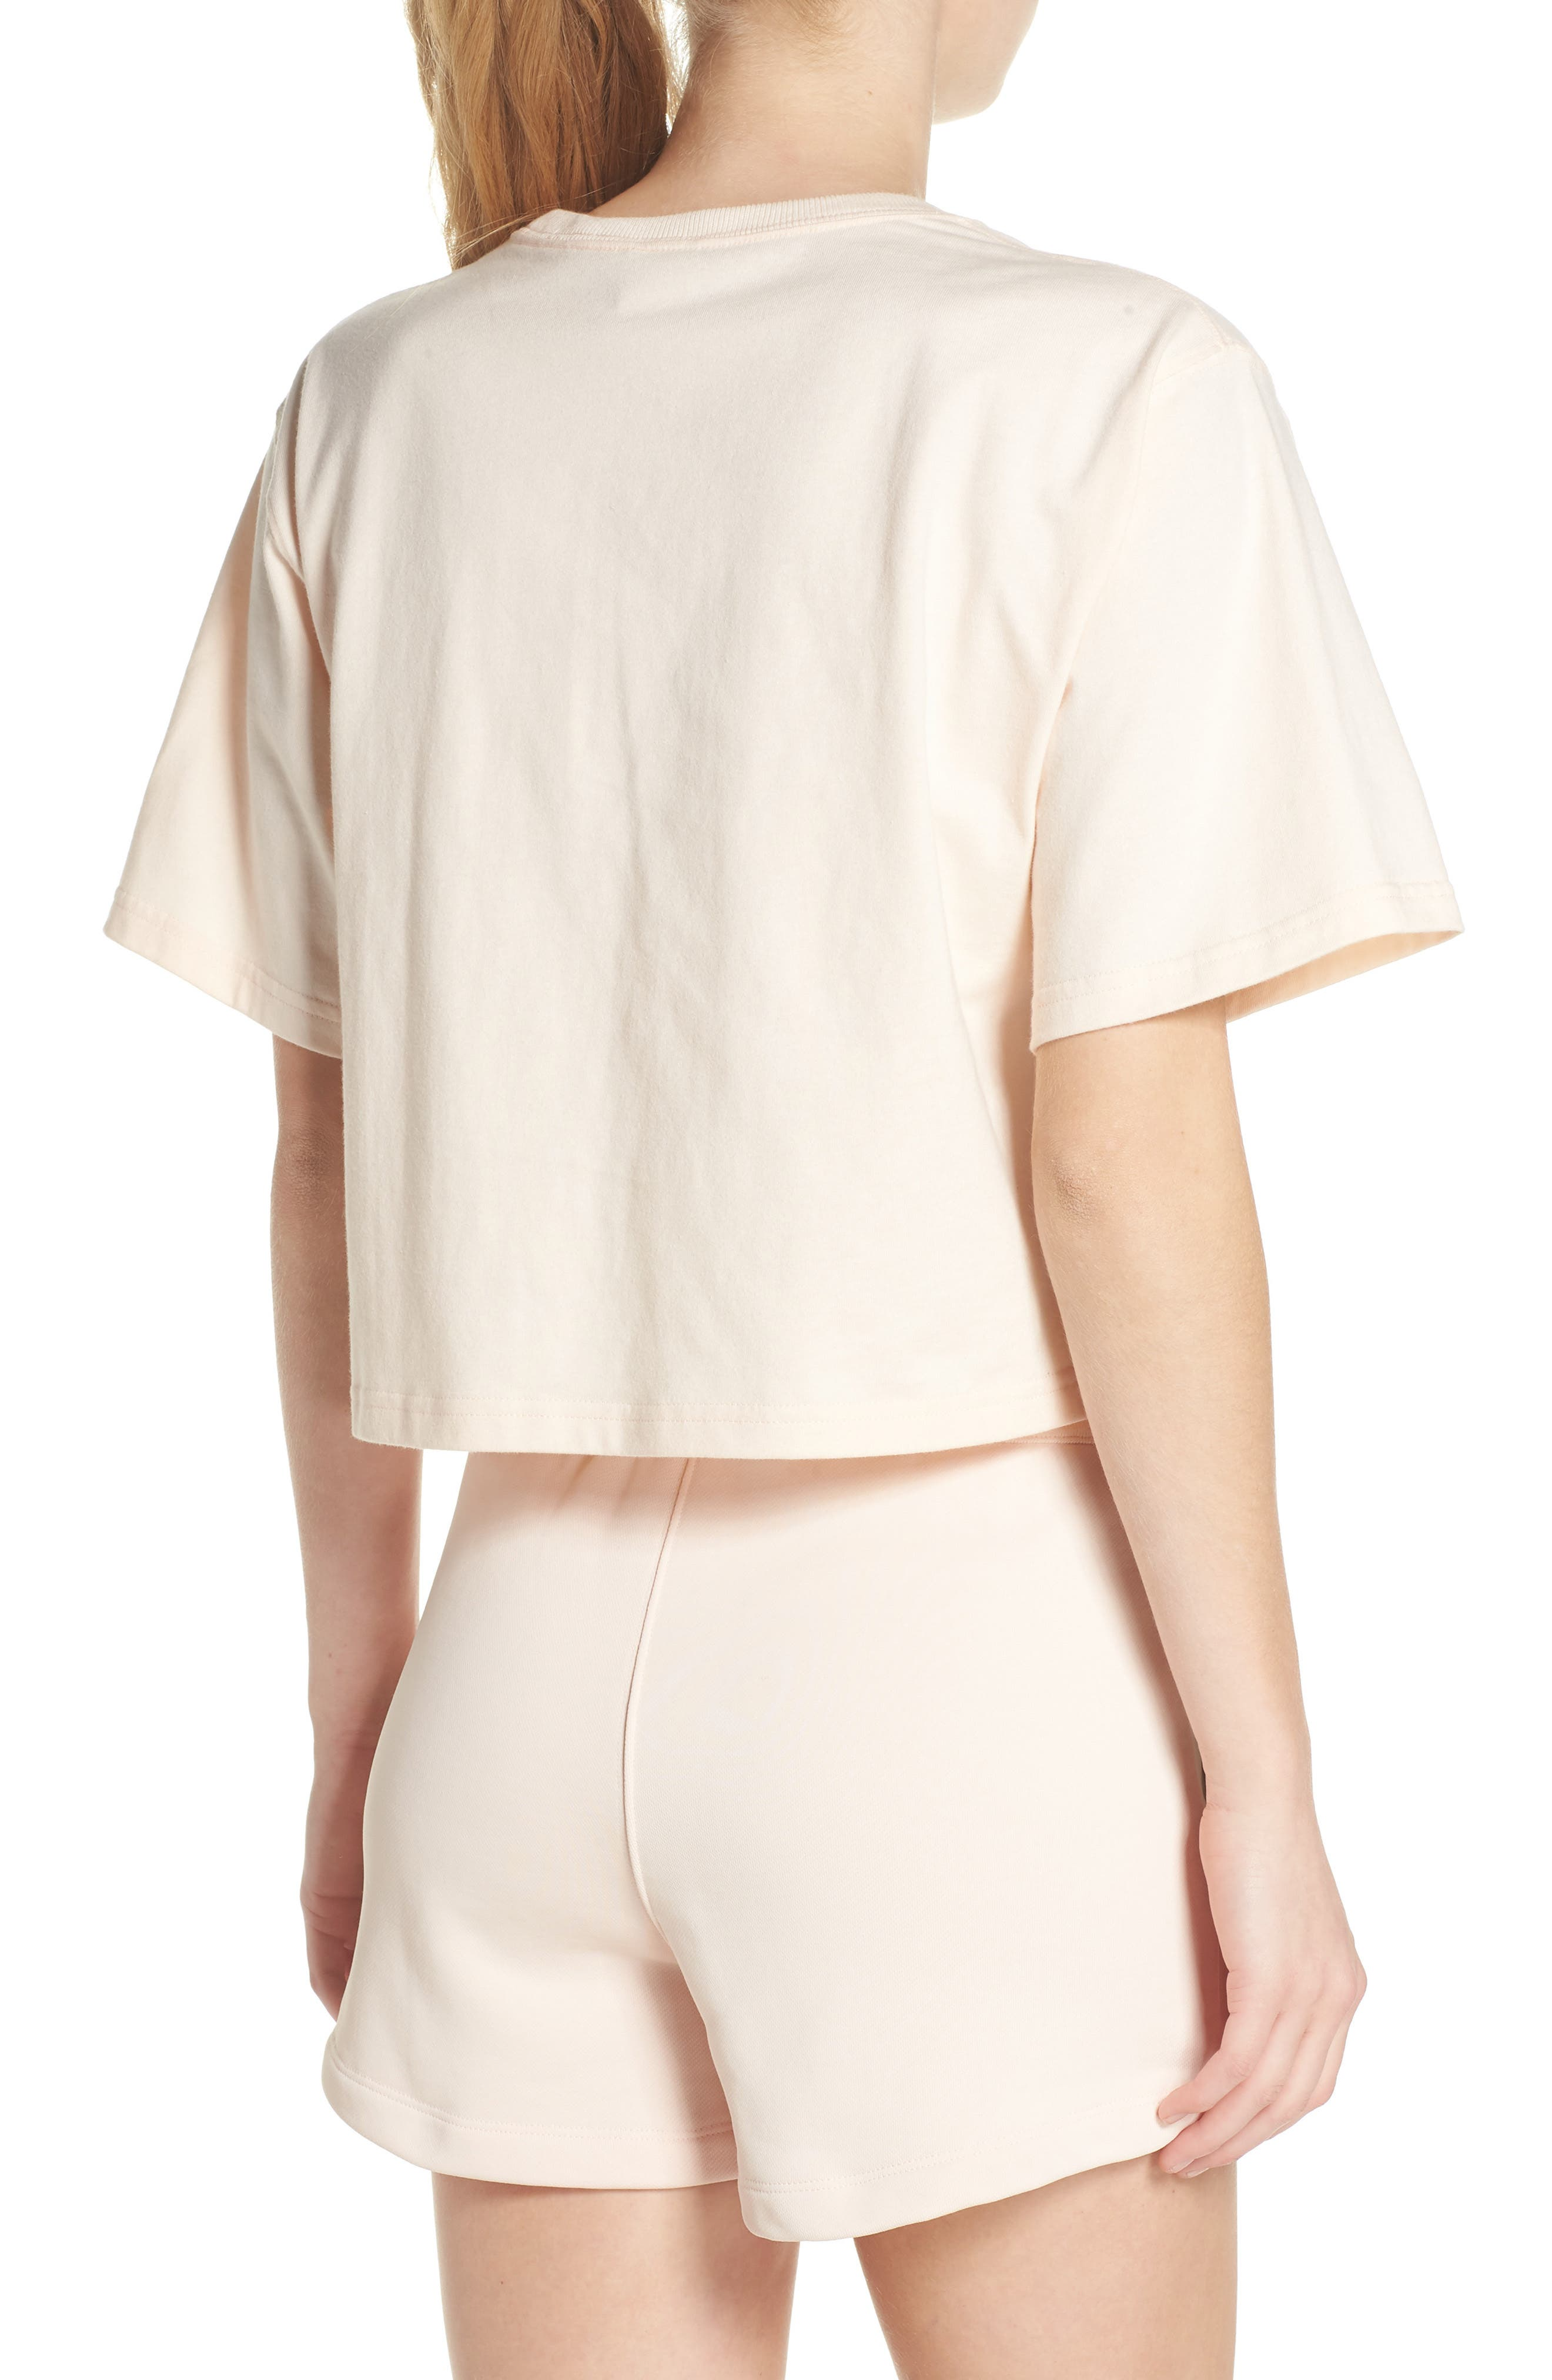 NikeLab Collection Crop Tee,                             Alternate thumbnail 2, color,                             Guava Ice/ Black